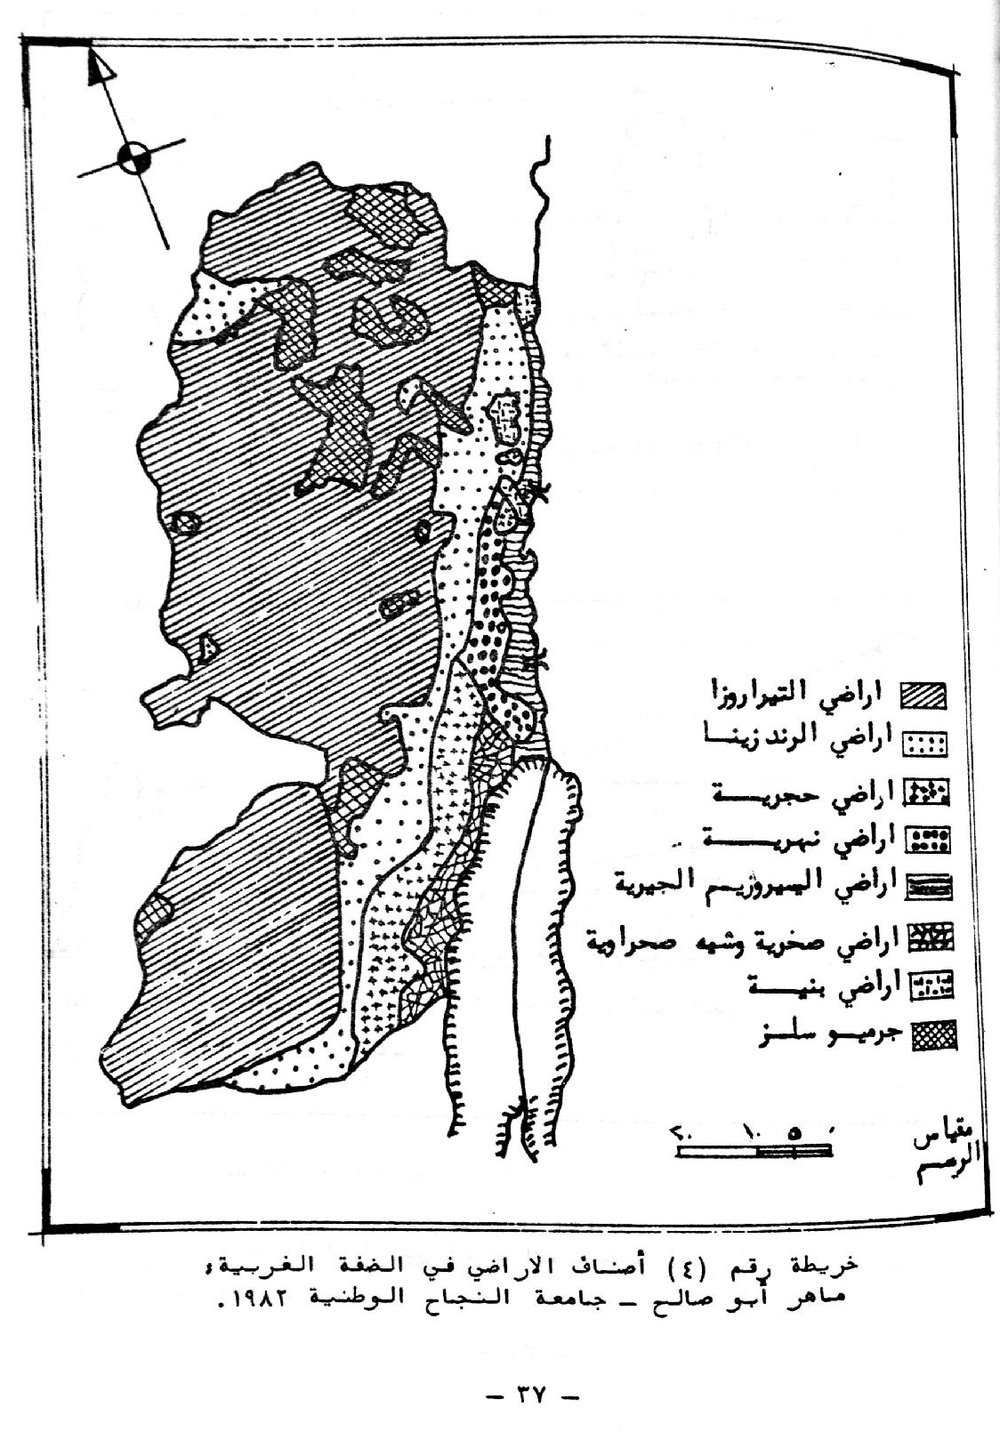 Soil type map of the West Bank